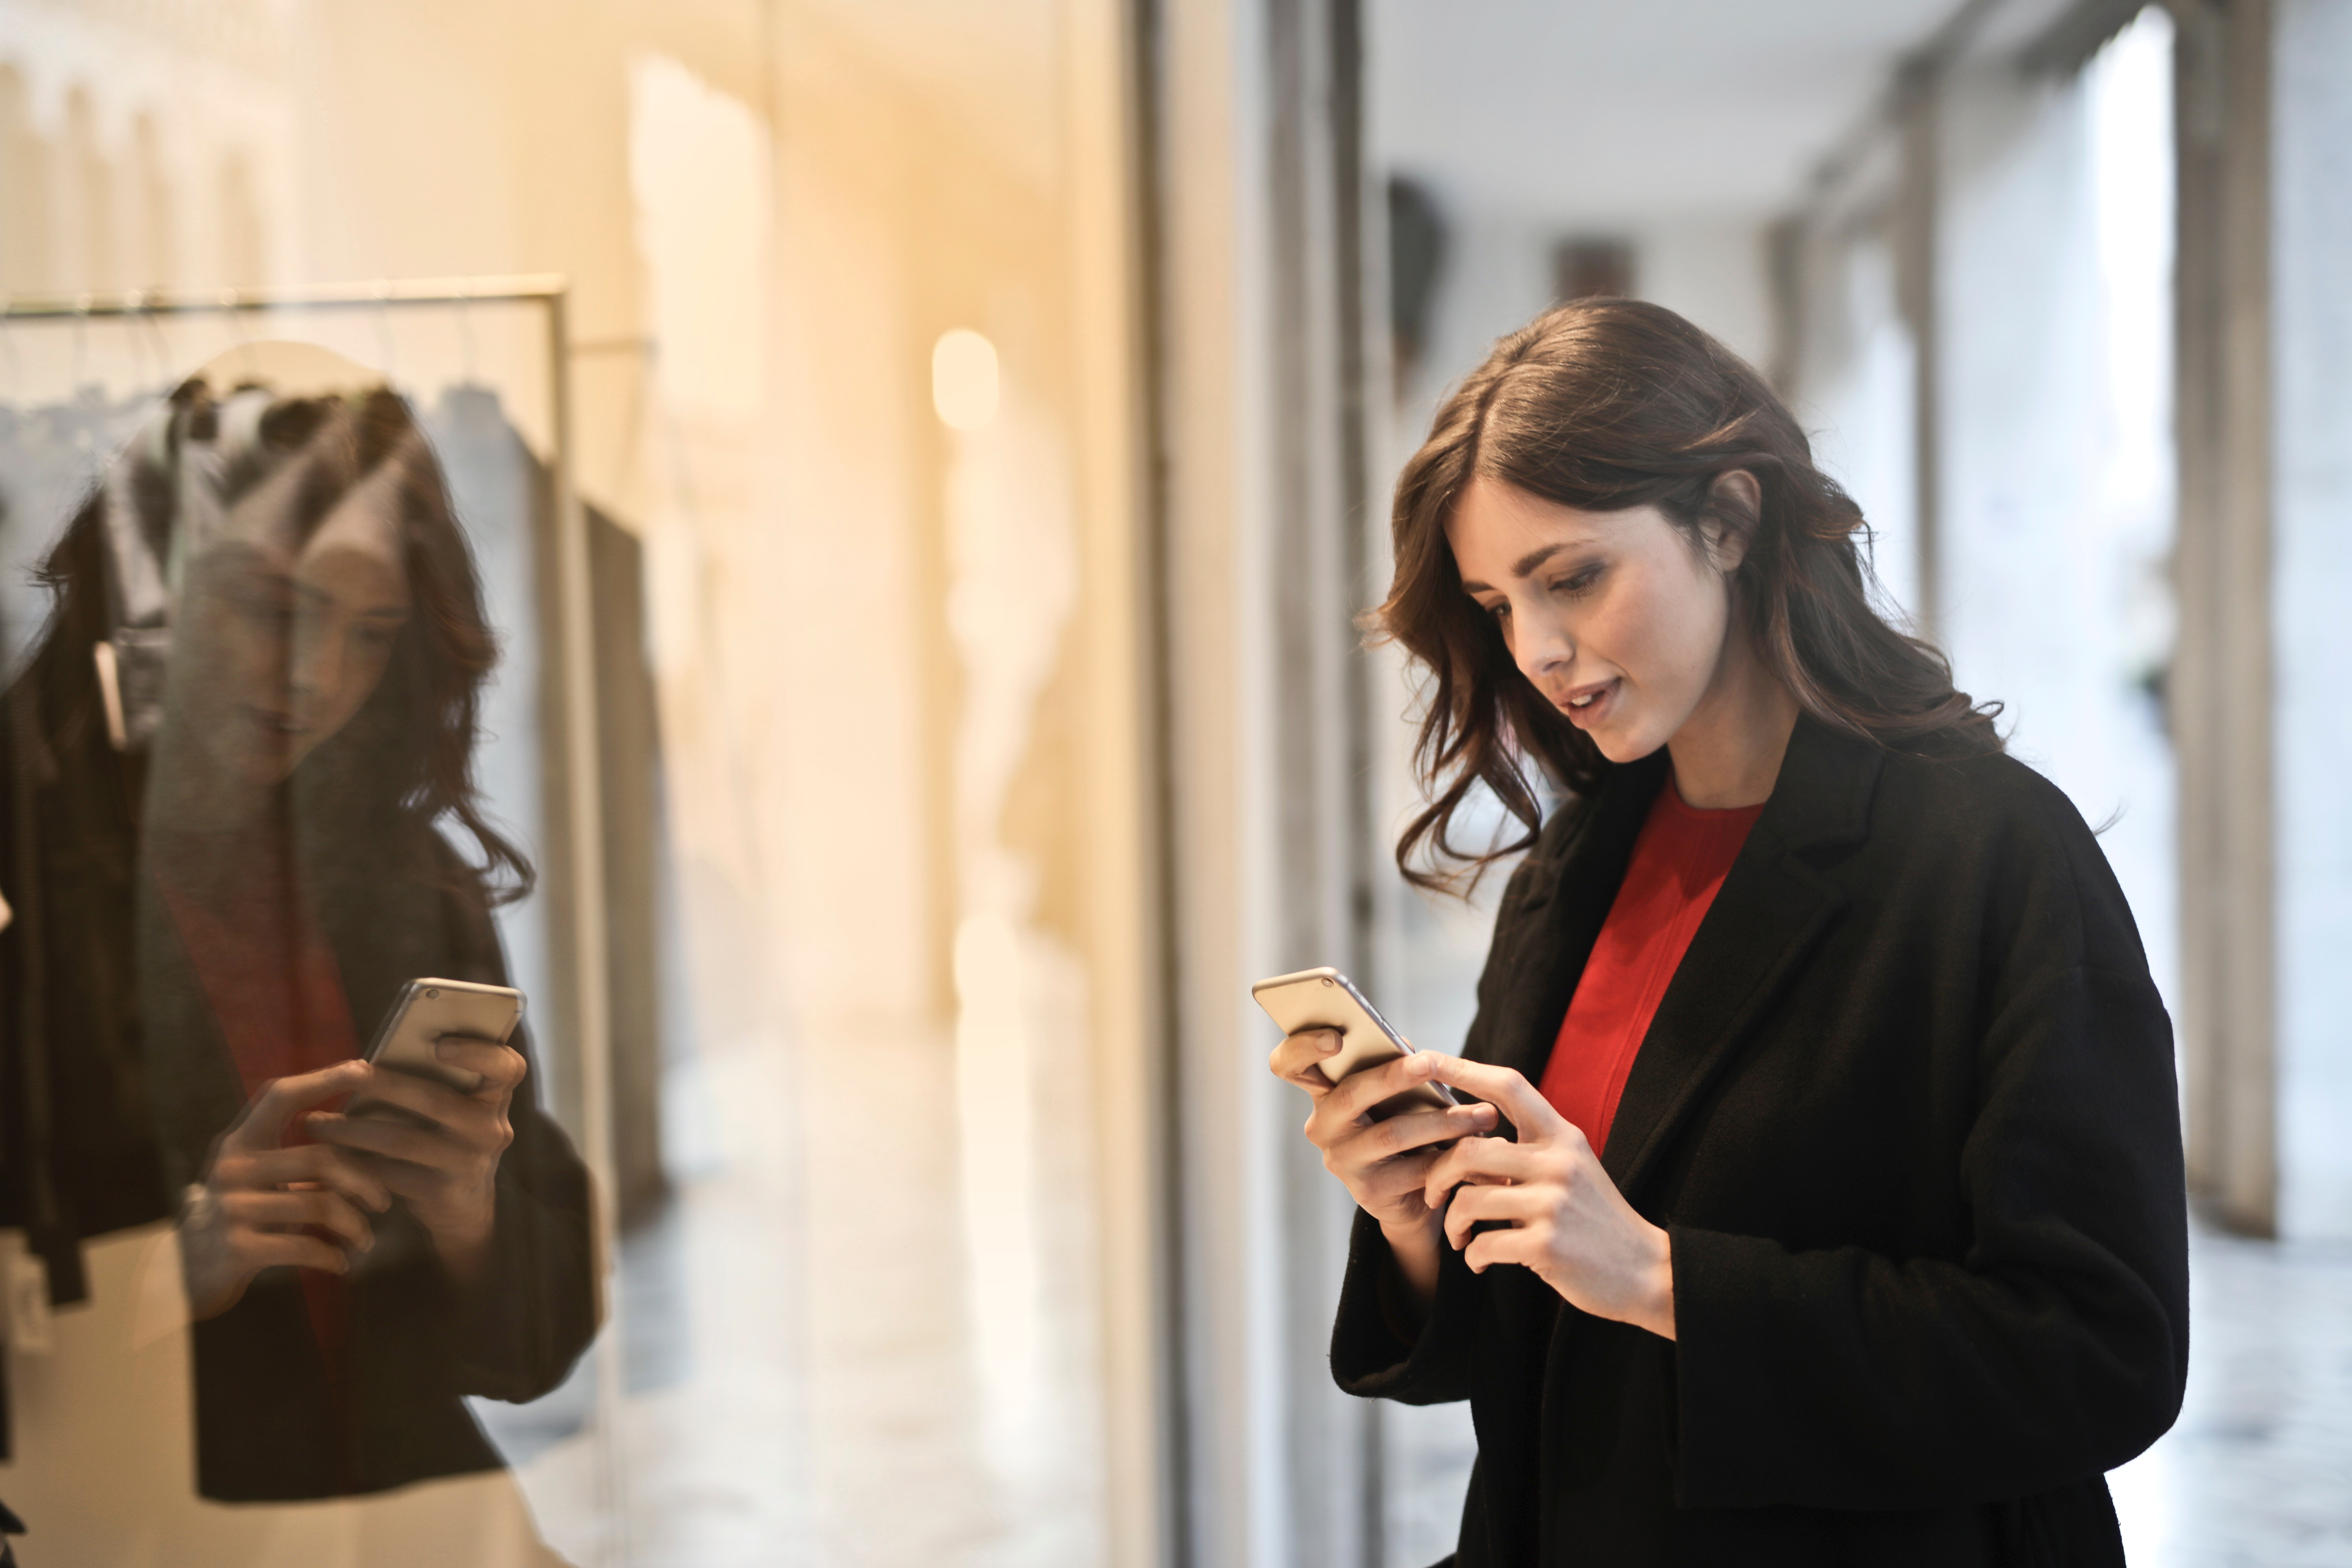 Close-up Photo of Woman in Black Coat Using Smartphone, Adult, Outerwear, Wear, Technology, HQ Photo